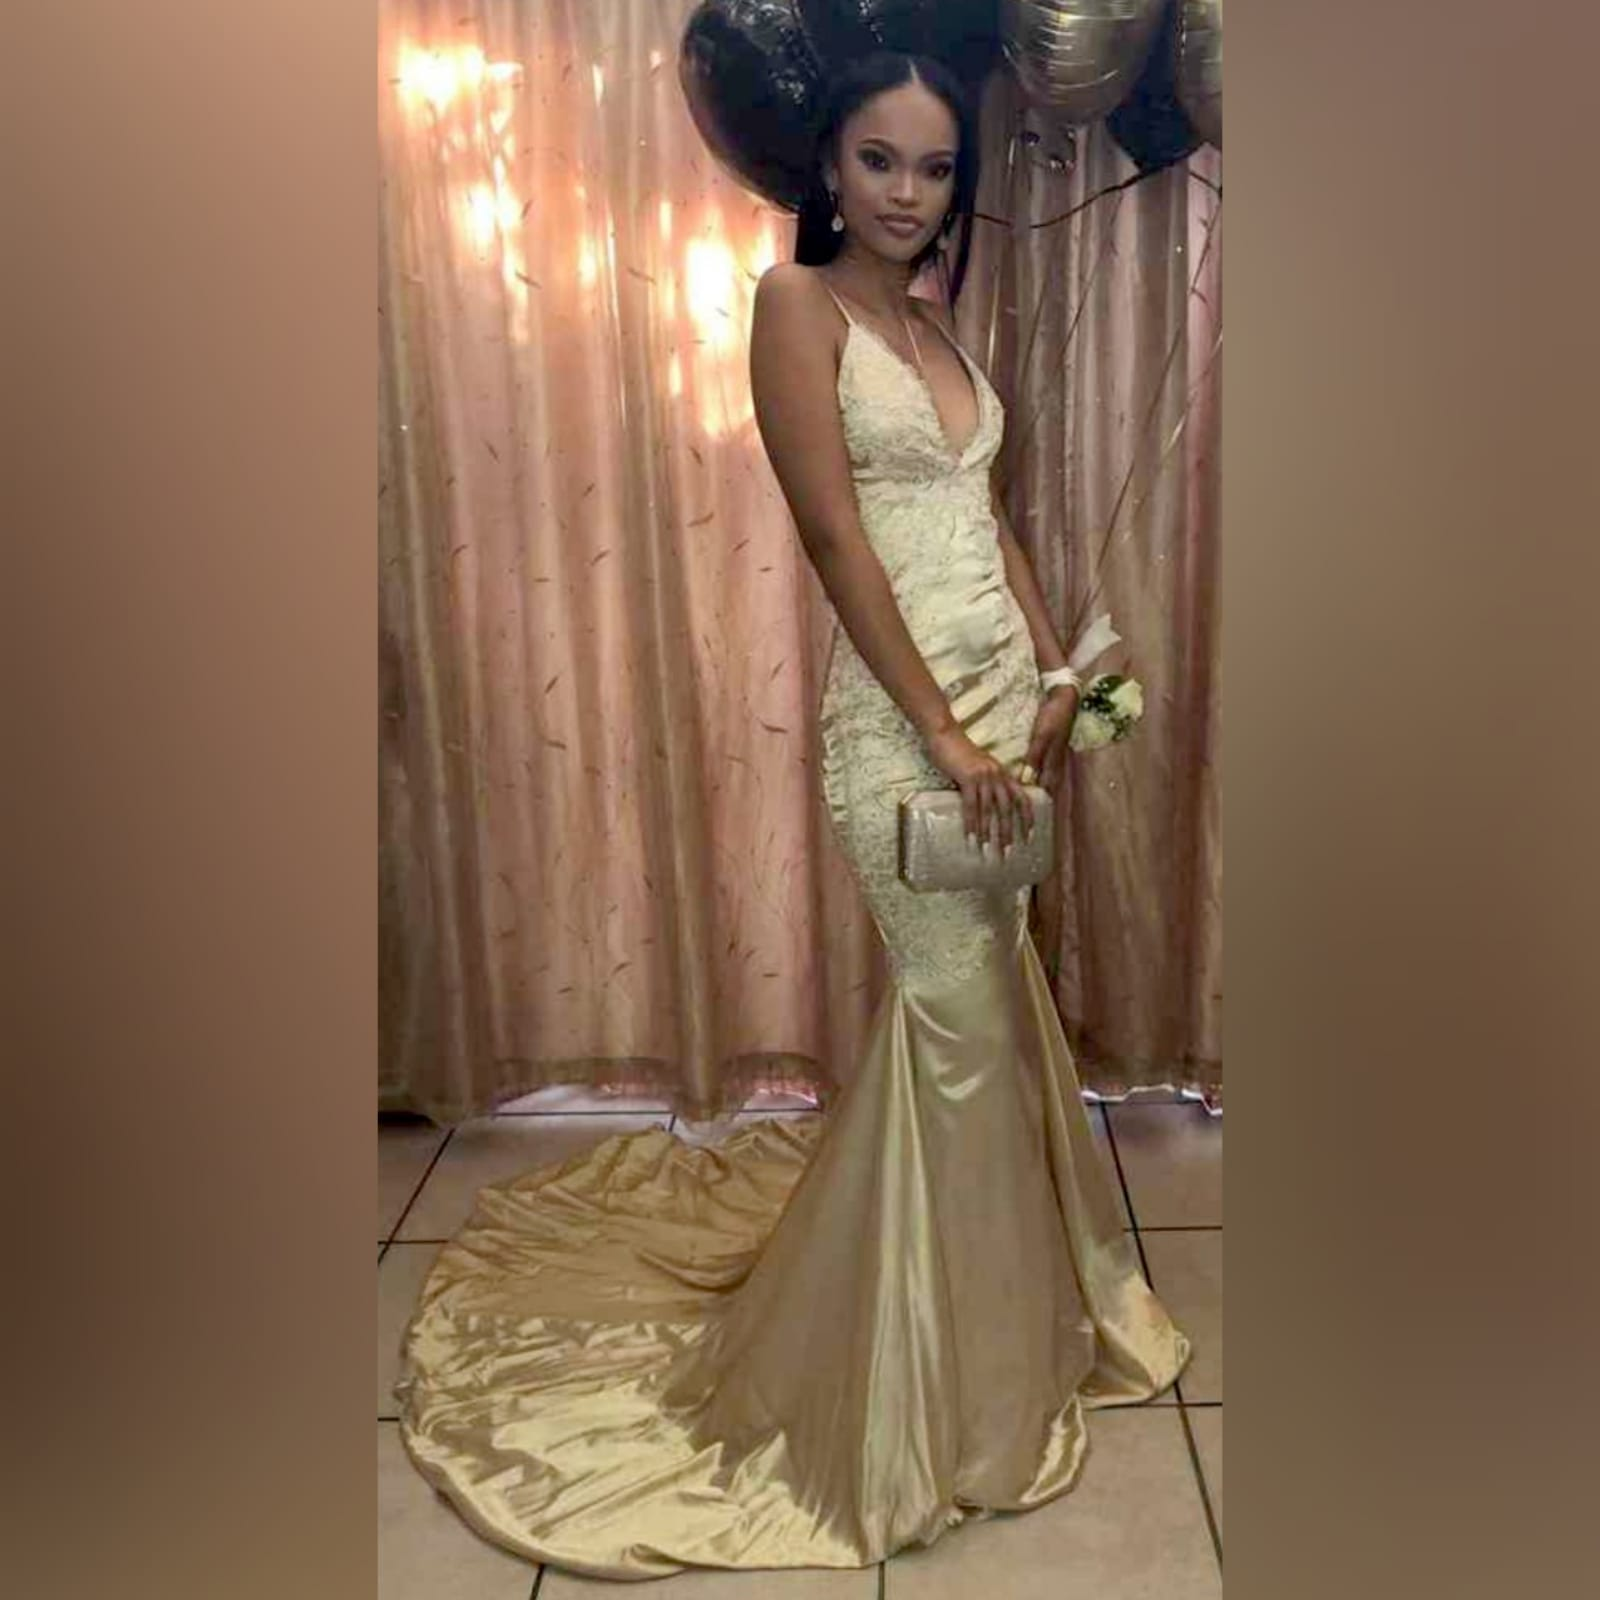 Gold satin soft mermaid matric farewell dress 4 gold satin soft mermaid matric farewell dress with a v neckline, a naked back and long train. Bodice hips and back detailed with lace.